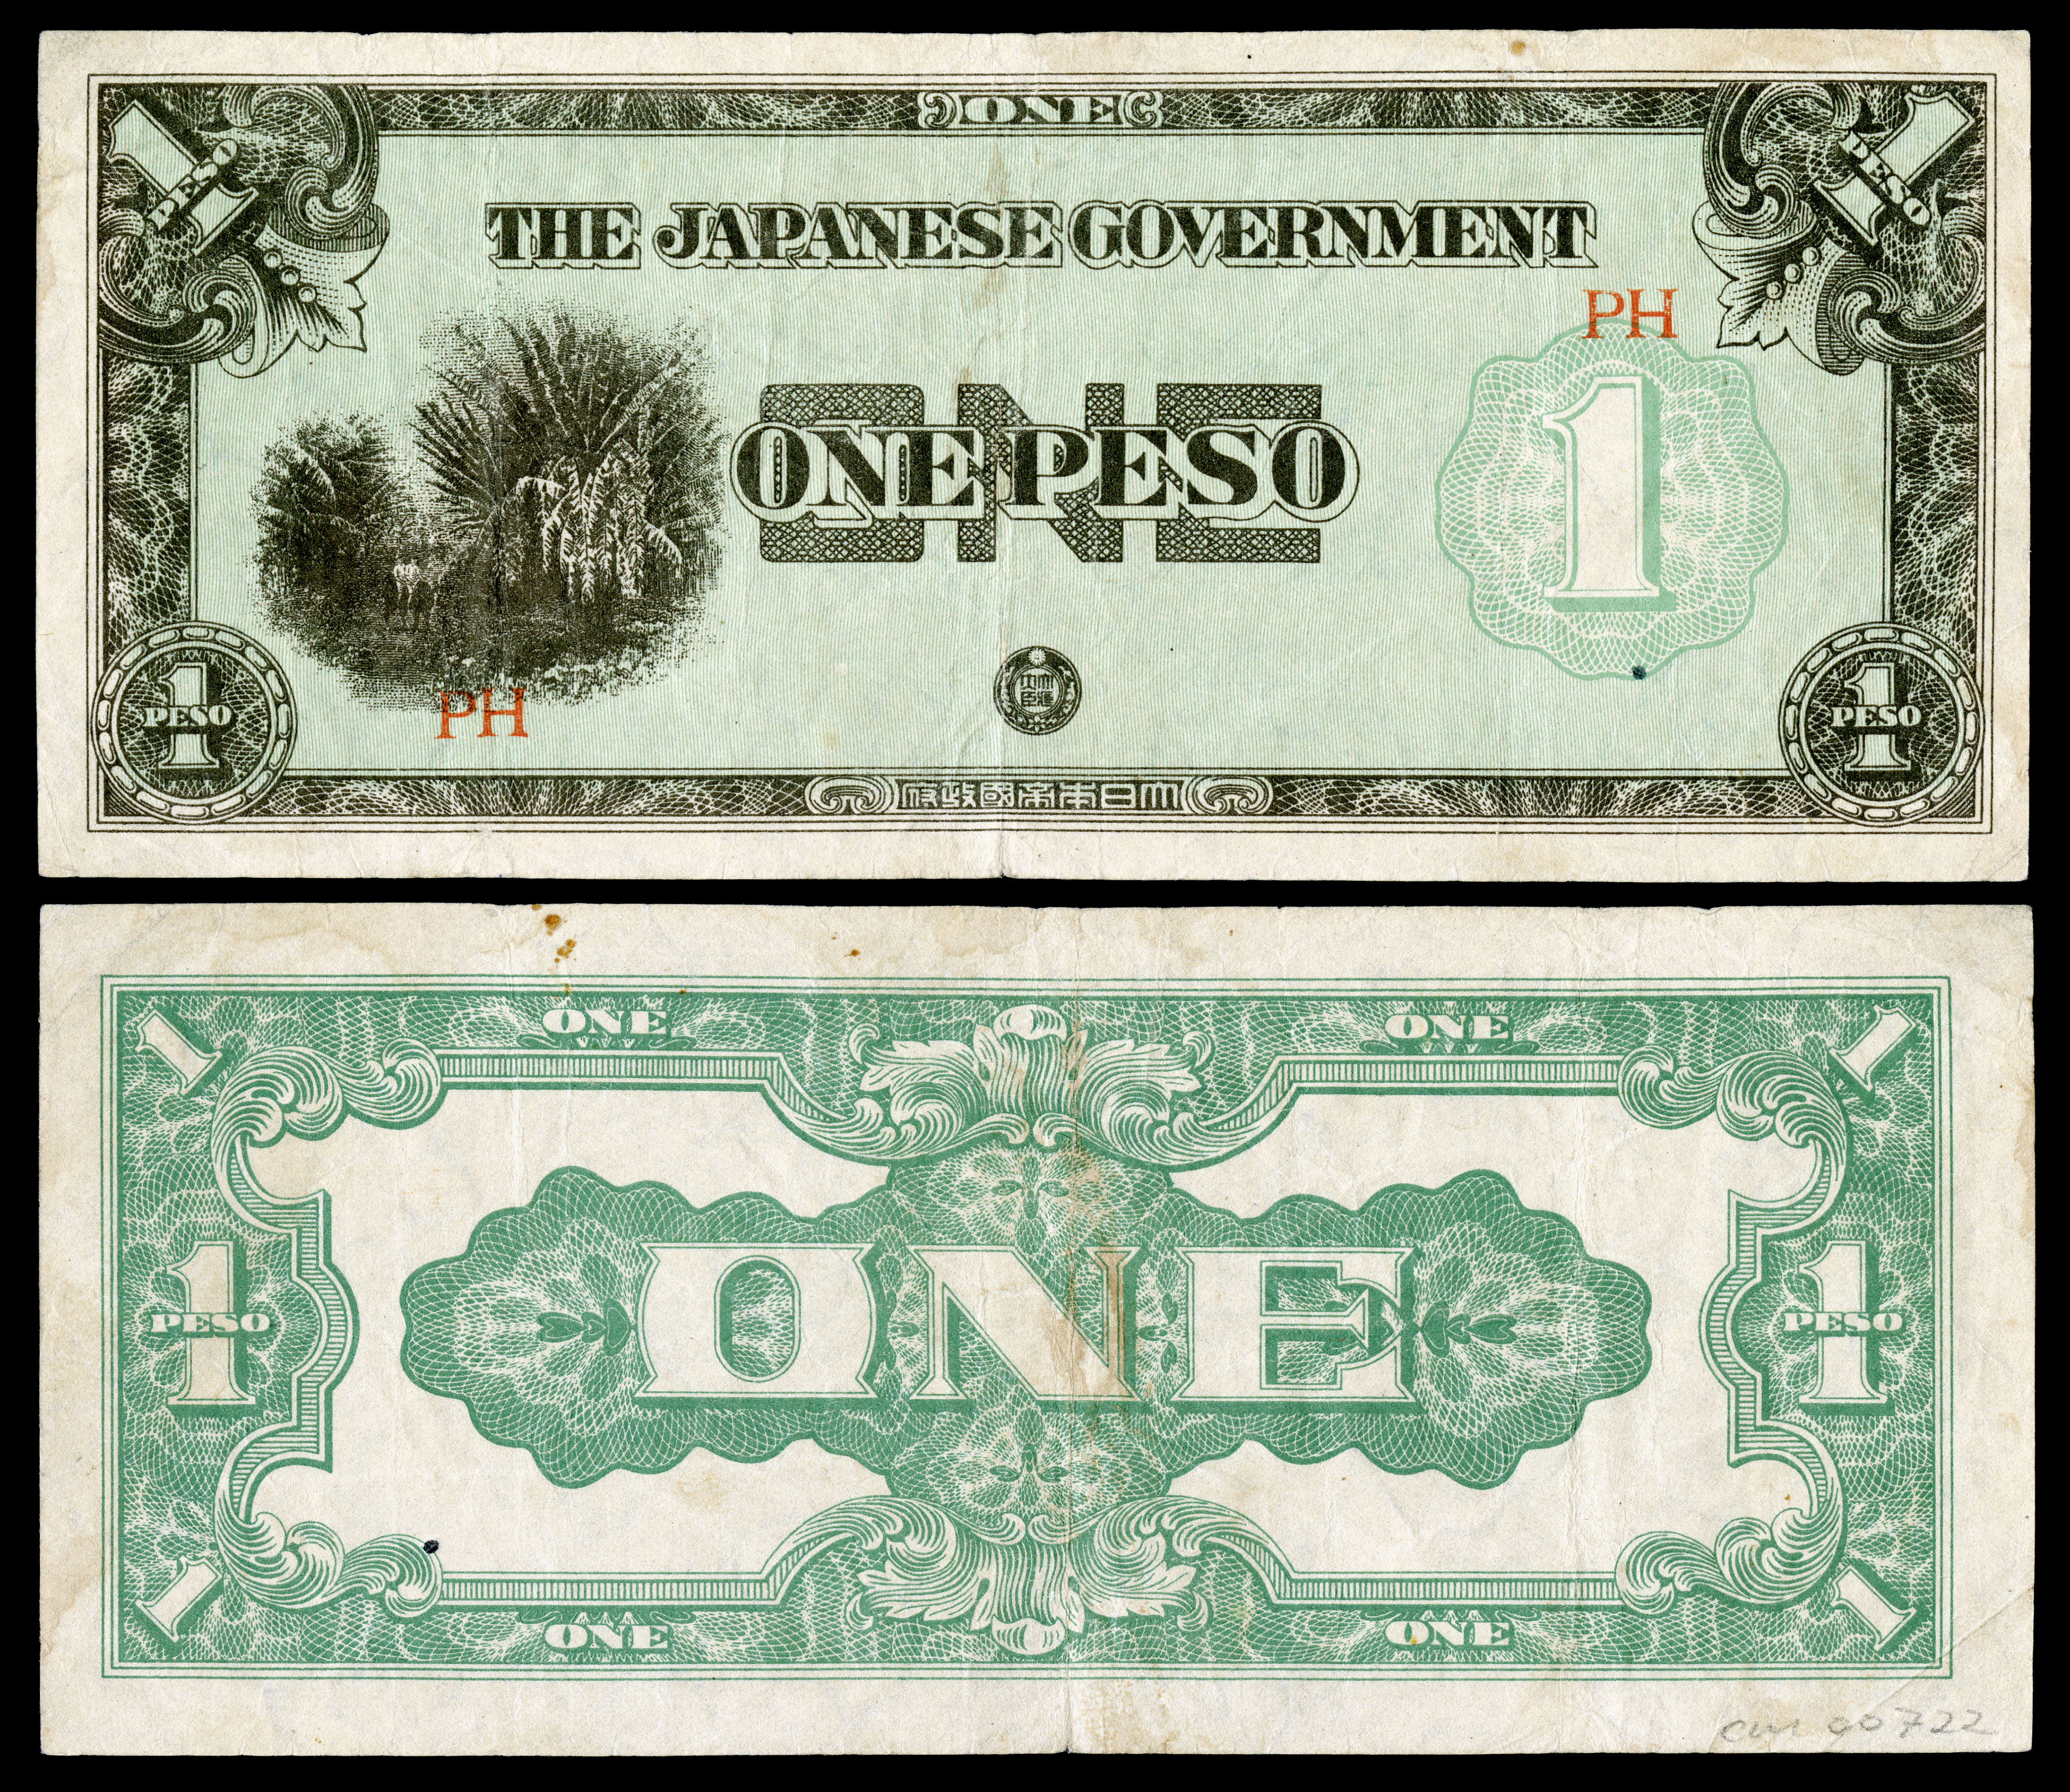 File:PHI-106-Japanese Government (Philippines)-1 Peso (1942